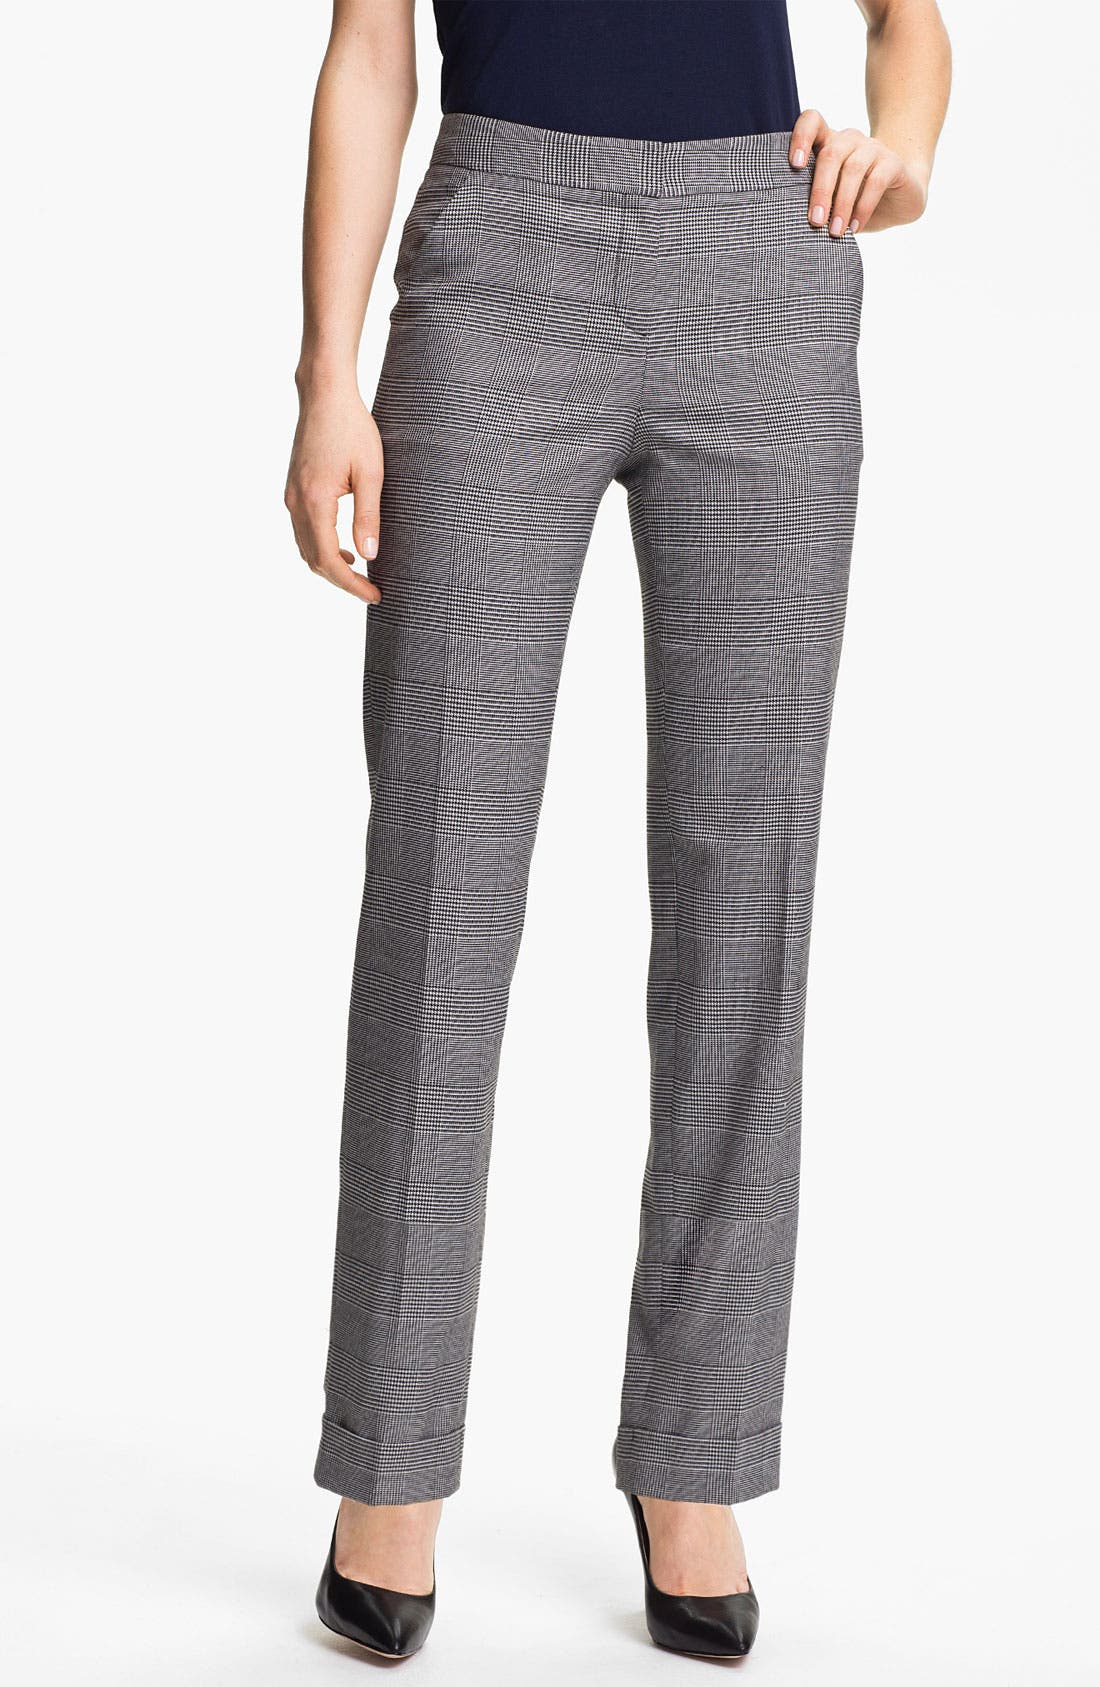 Alternate Image 1 Selected - Anne Klein Cuffed Glen Plaid Pants (Petite)